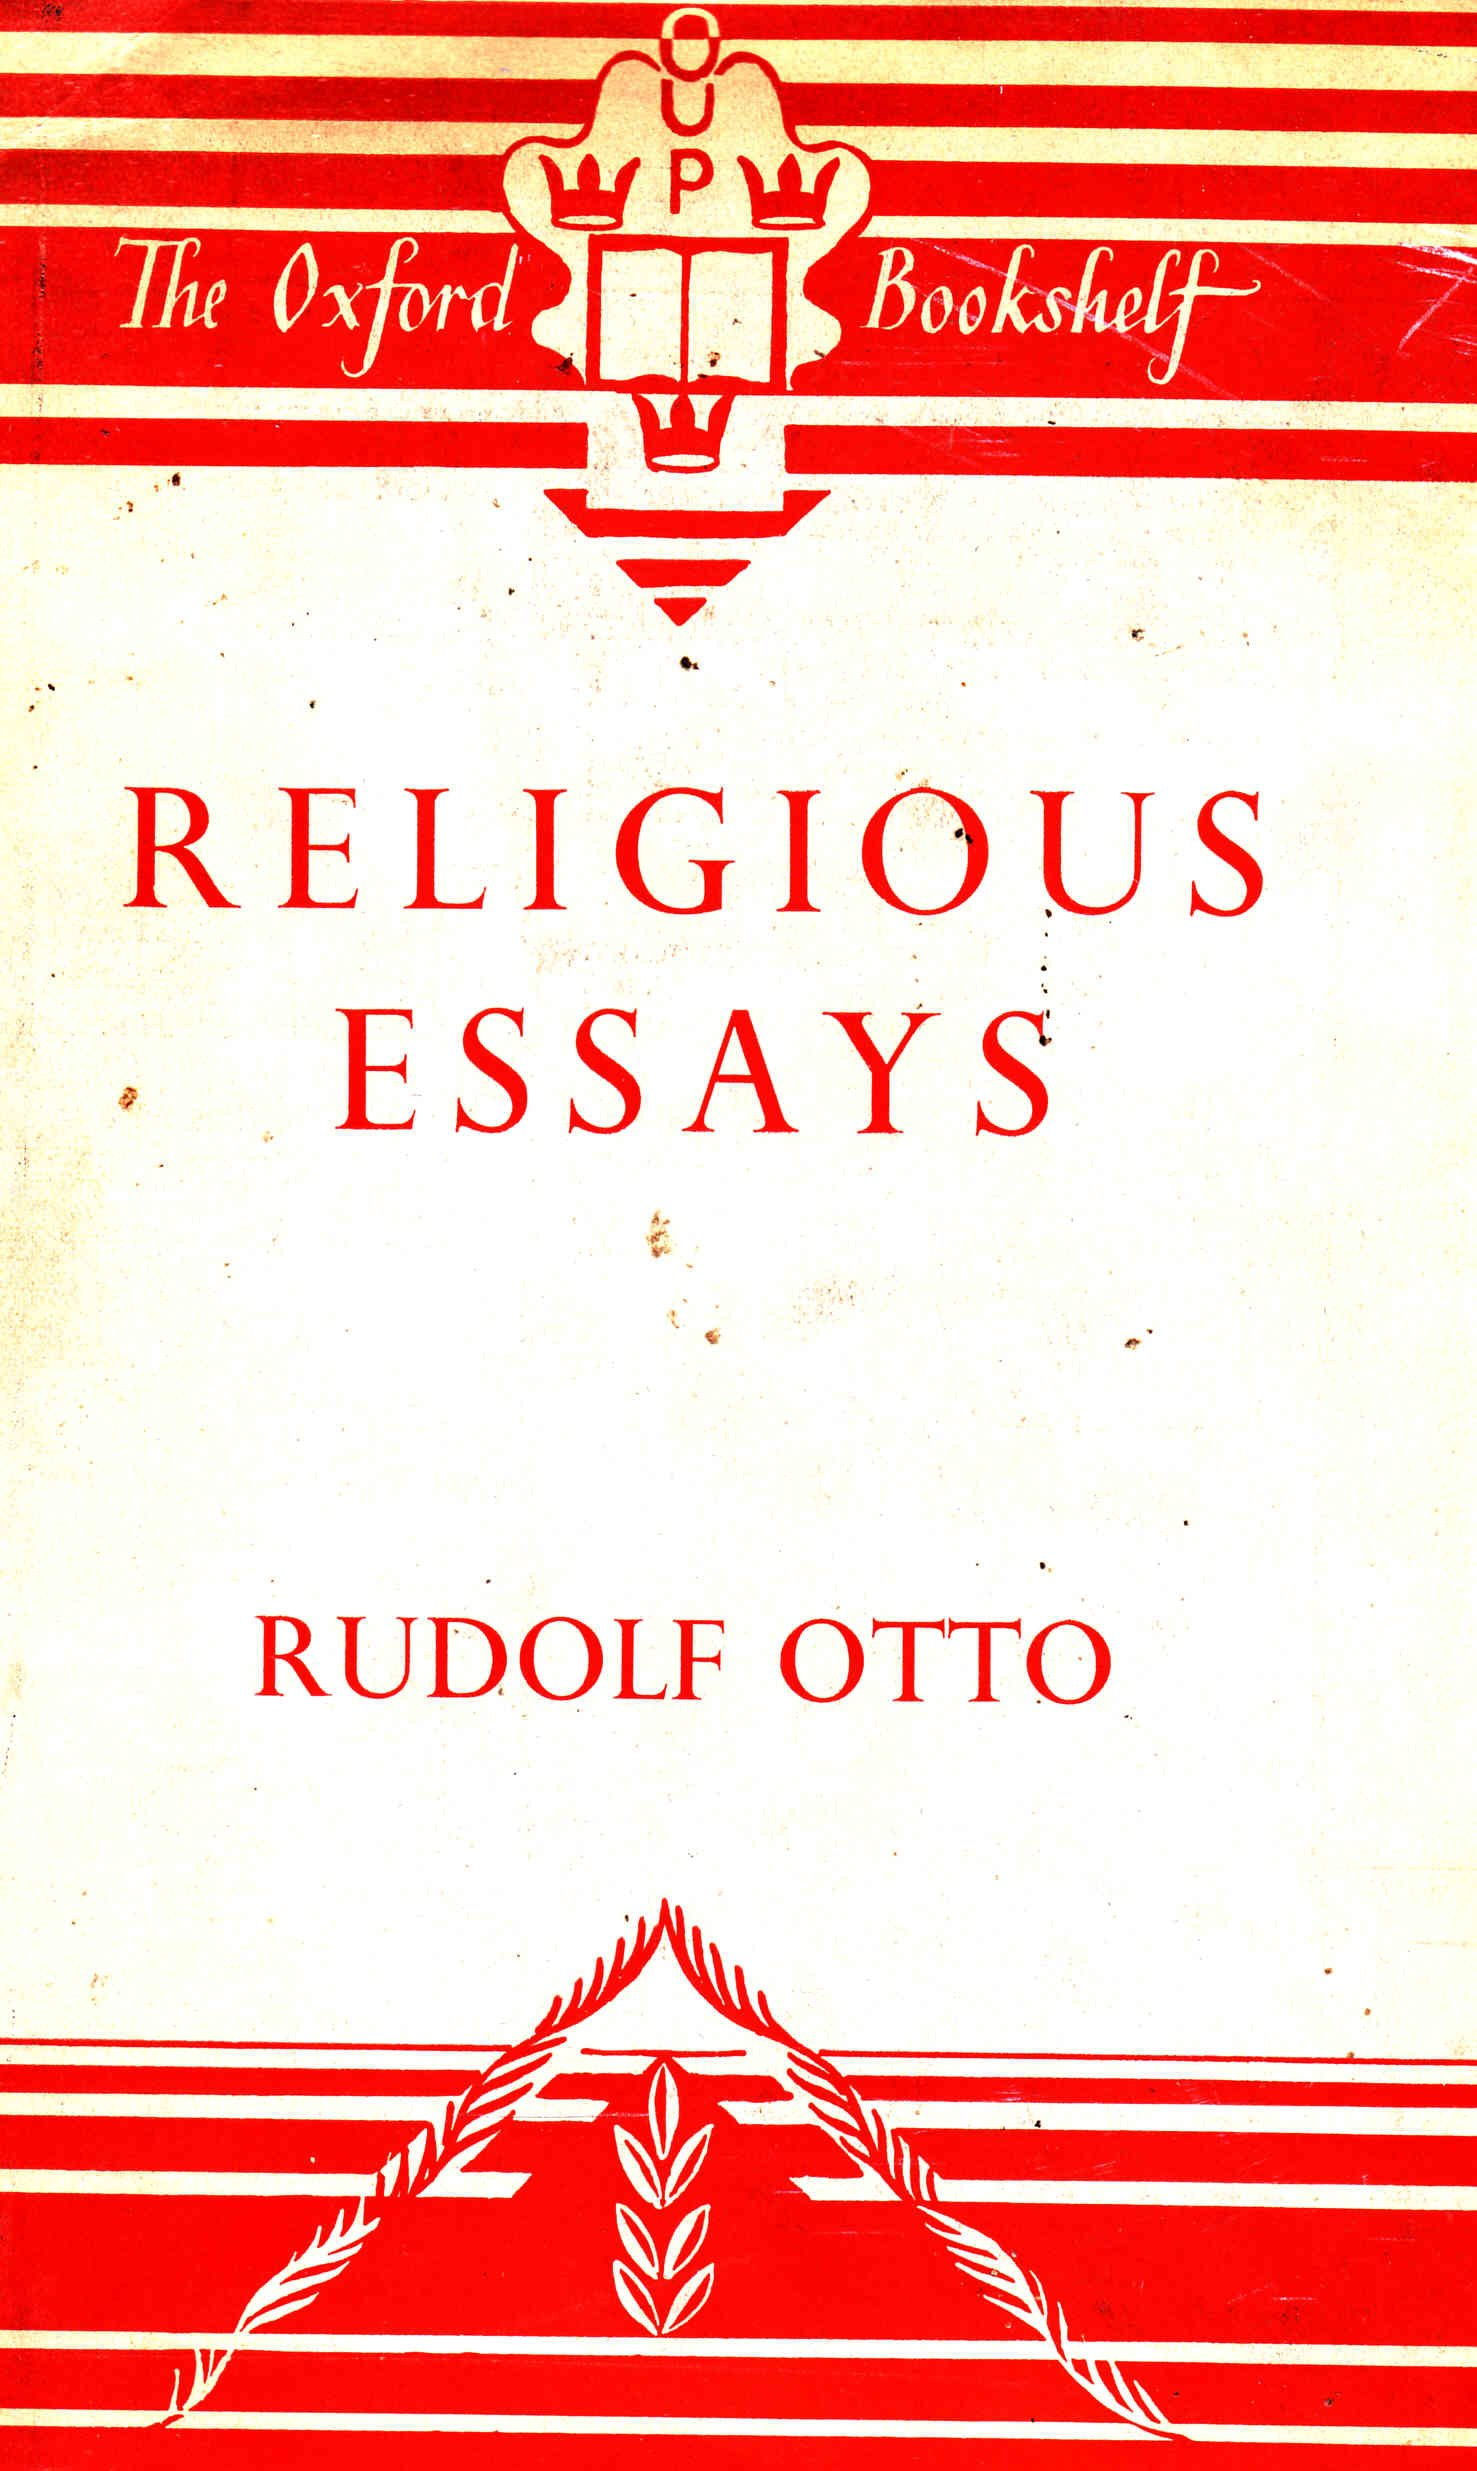 High School Dropouts Essay Religious Essays A Supplement To The Idea Of The Holy Rudolf Otto  Amazoncom Books Www Oppapers Com Essays also Narrative Essay Example High School Religious Essays A Supplement To The Idea Of The Holy Rudolf  Essay About Paper